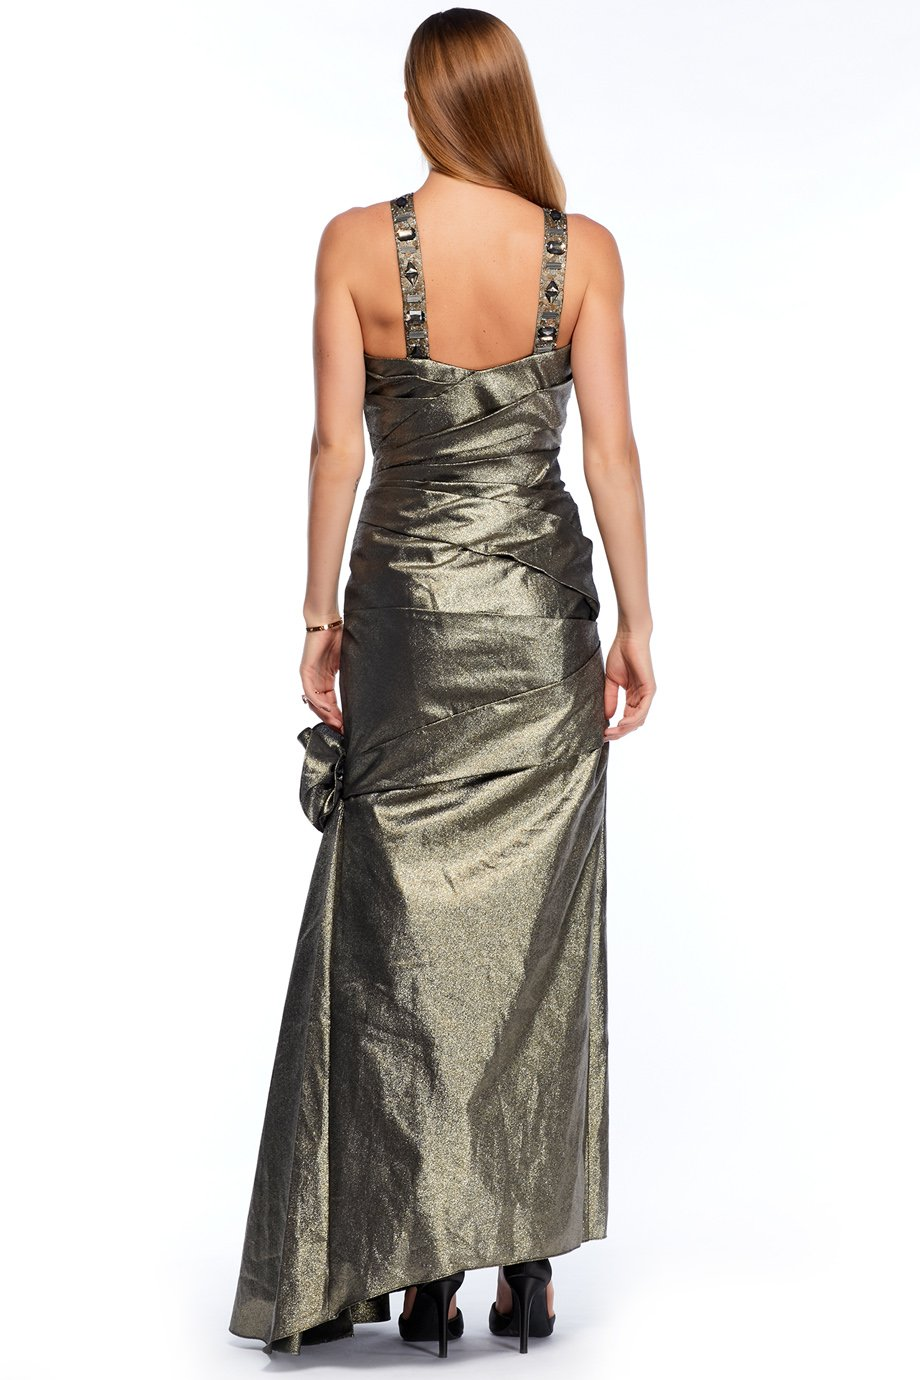 Monique Lhullier Metallic Grey Mermaid Gown